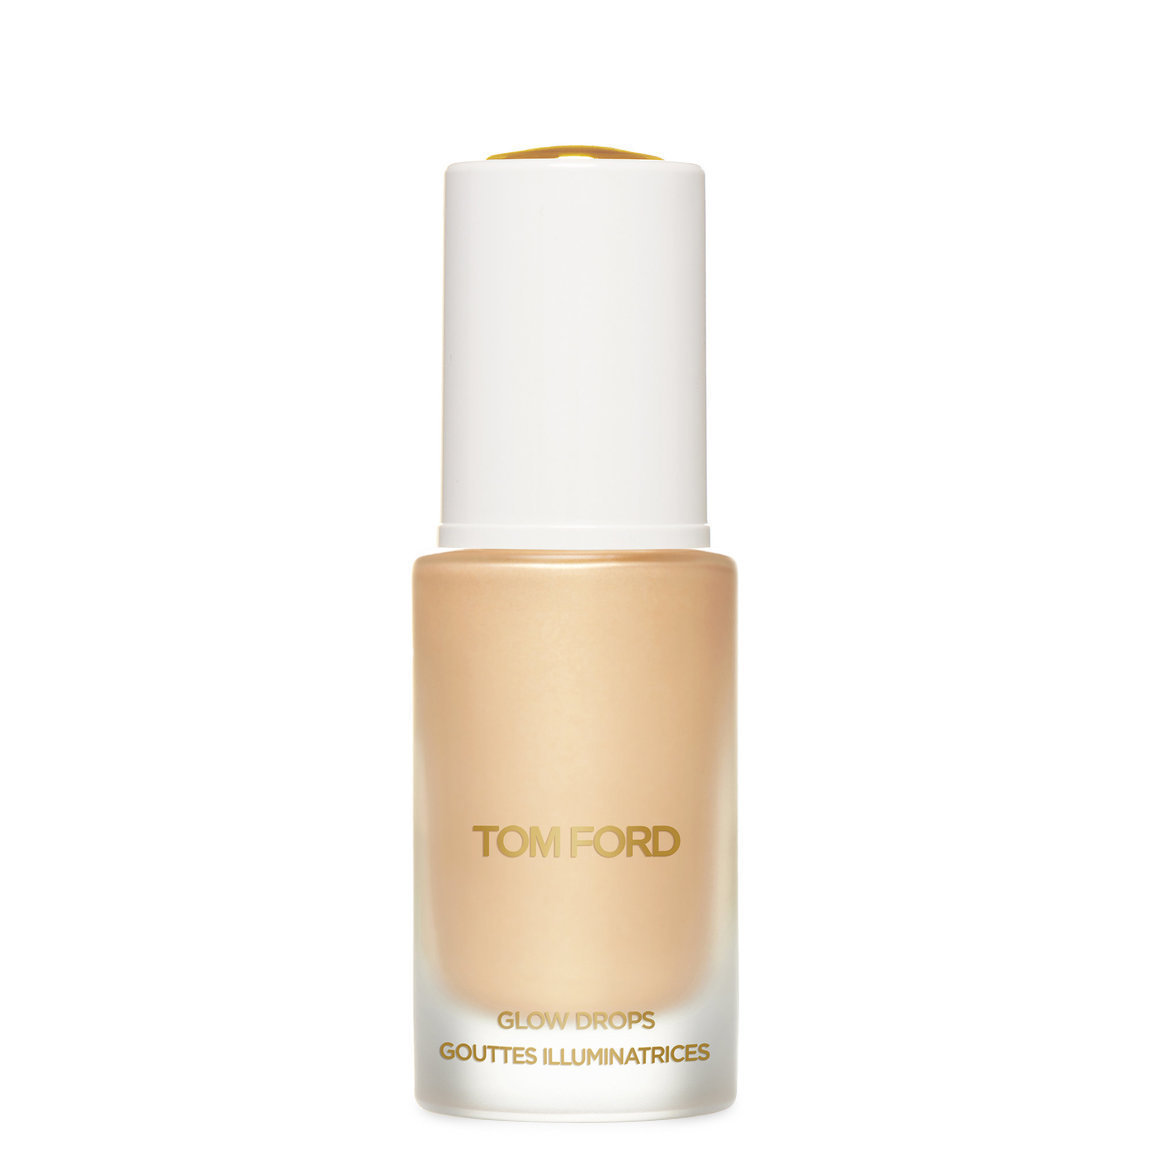 TOM FORD Soleil Neige Glow Drops 03 Reflects Gilt product swatch.